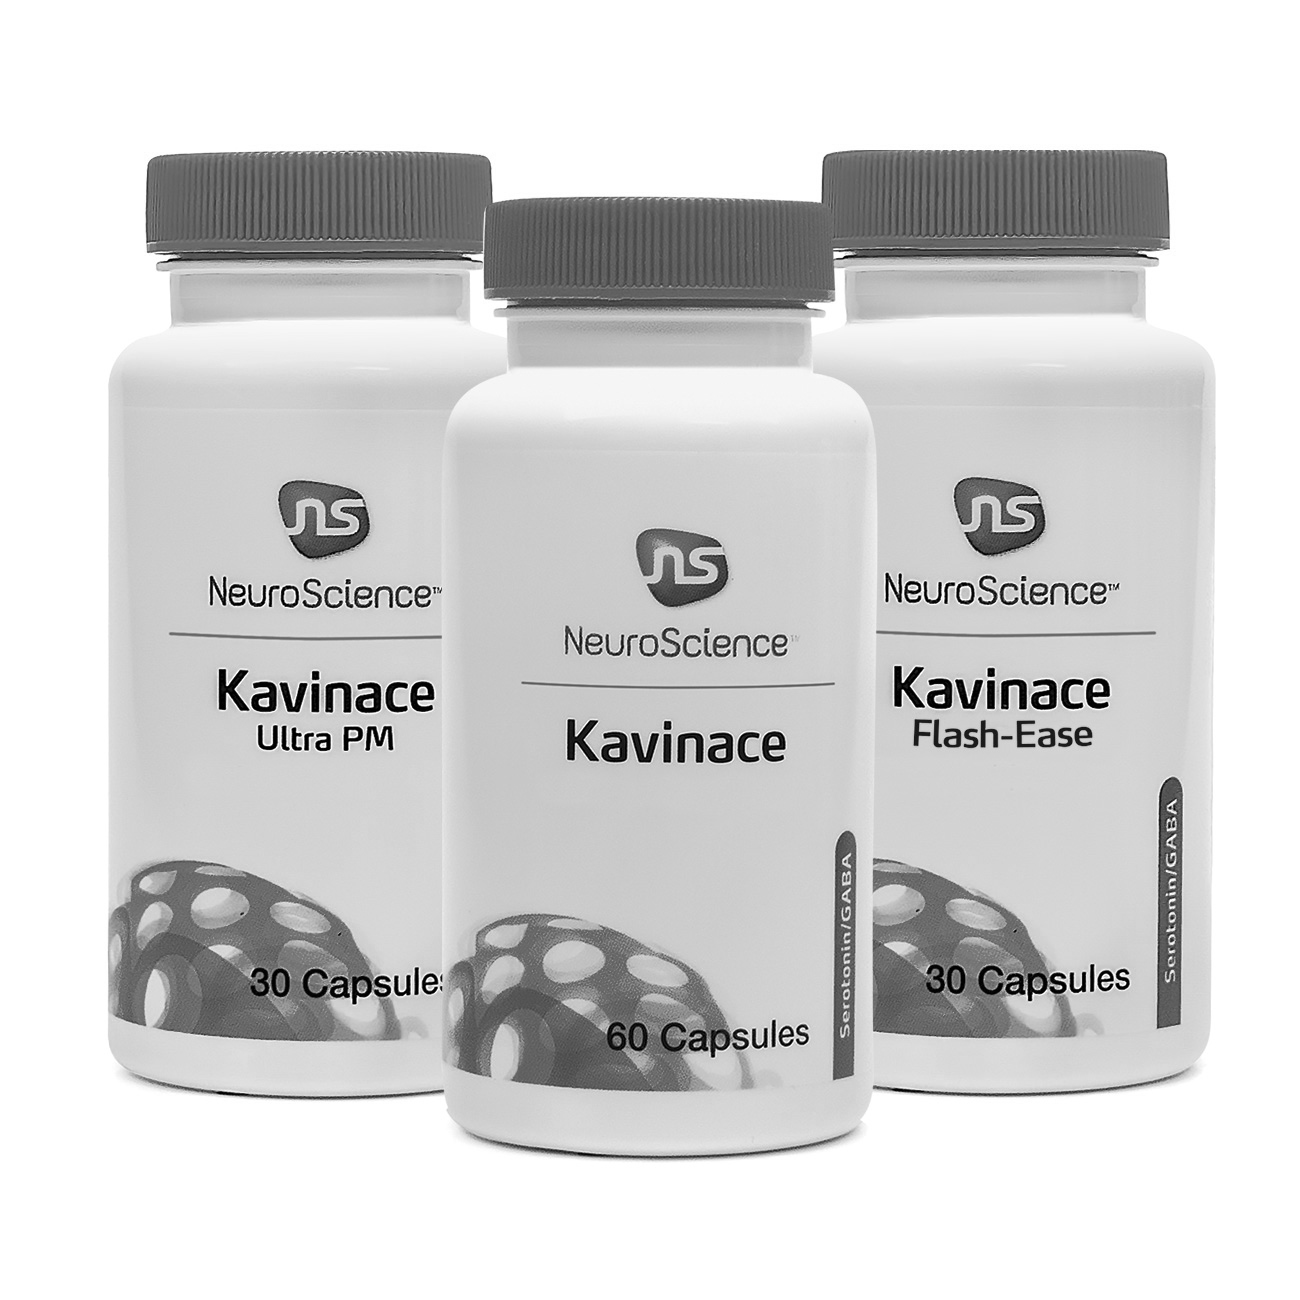 Kav products